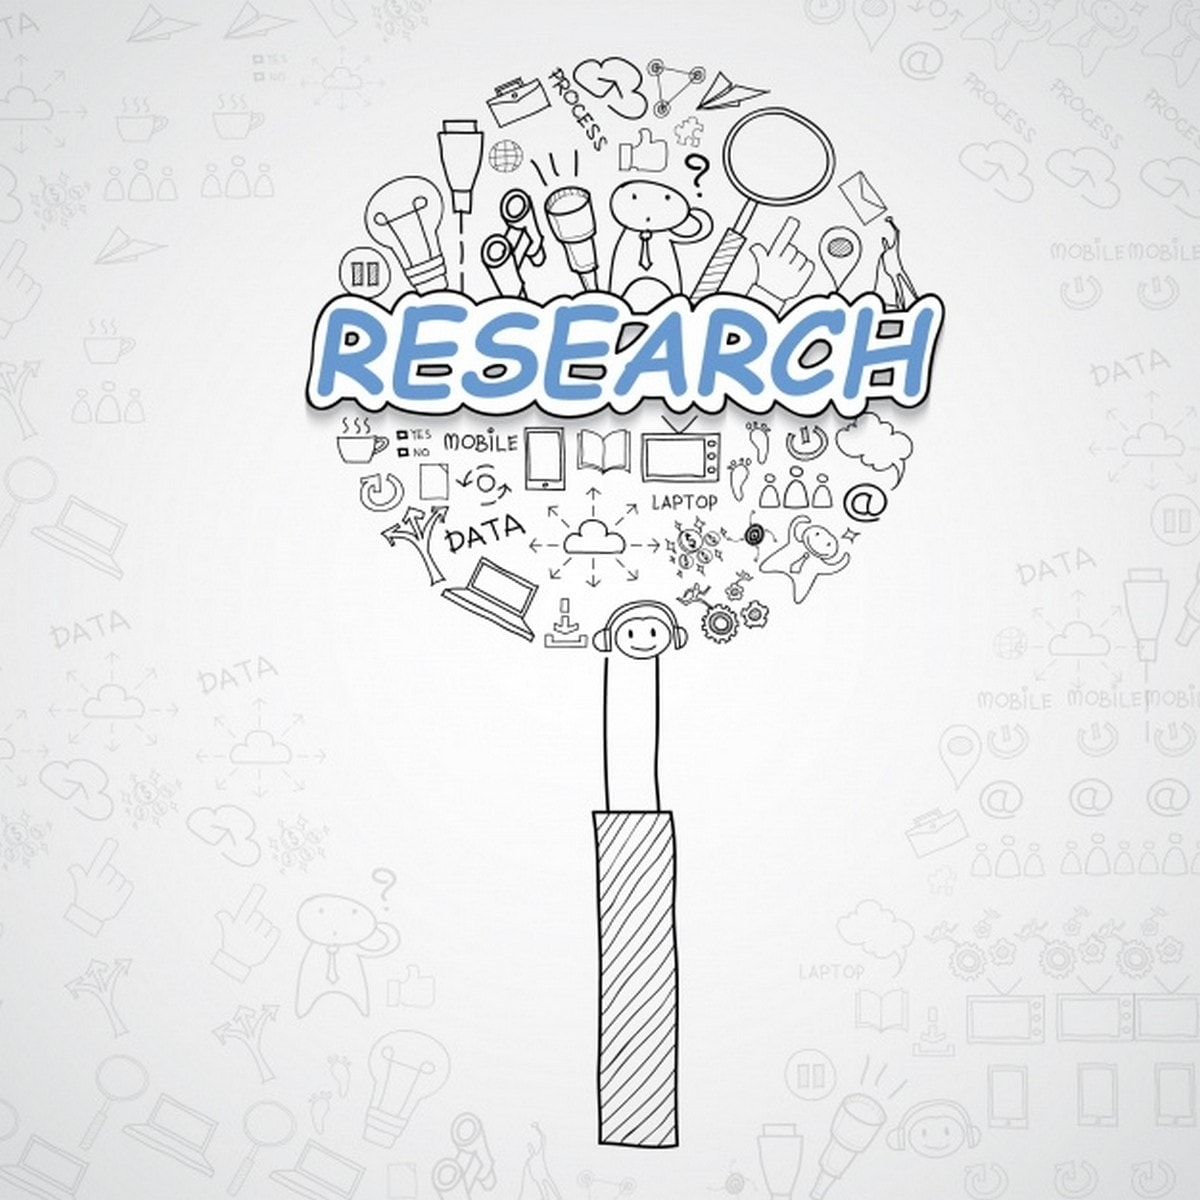 6 Different Types Of Research Used by Organizations